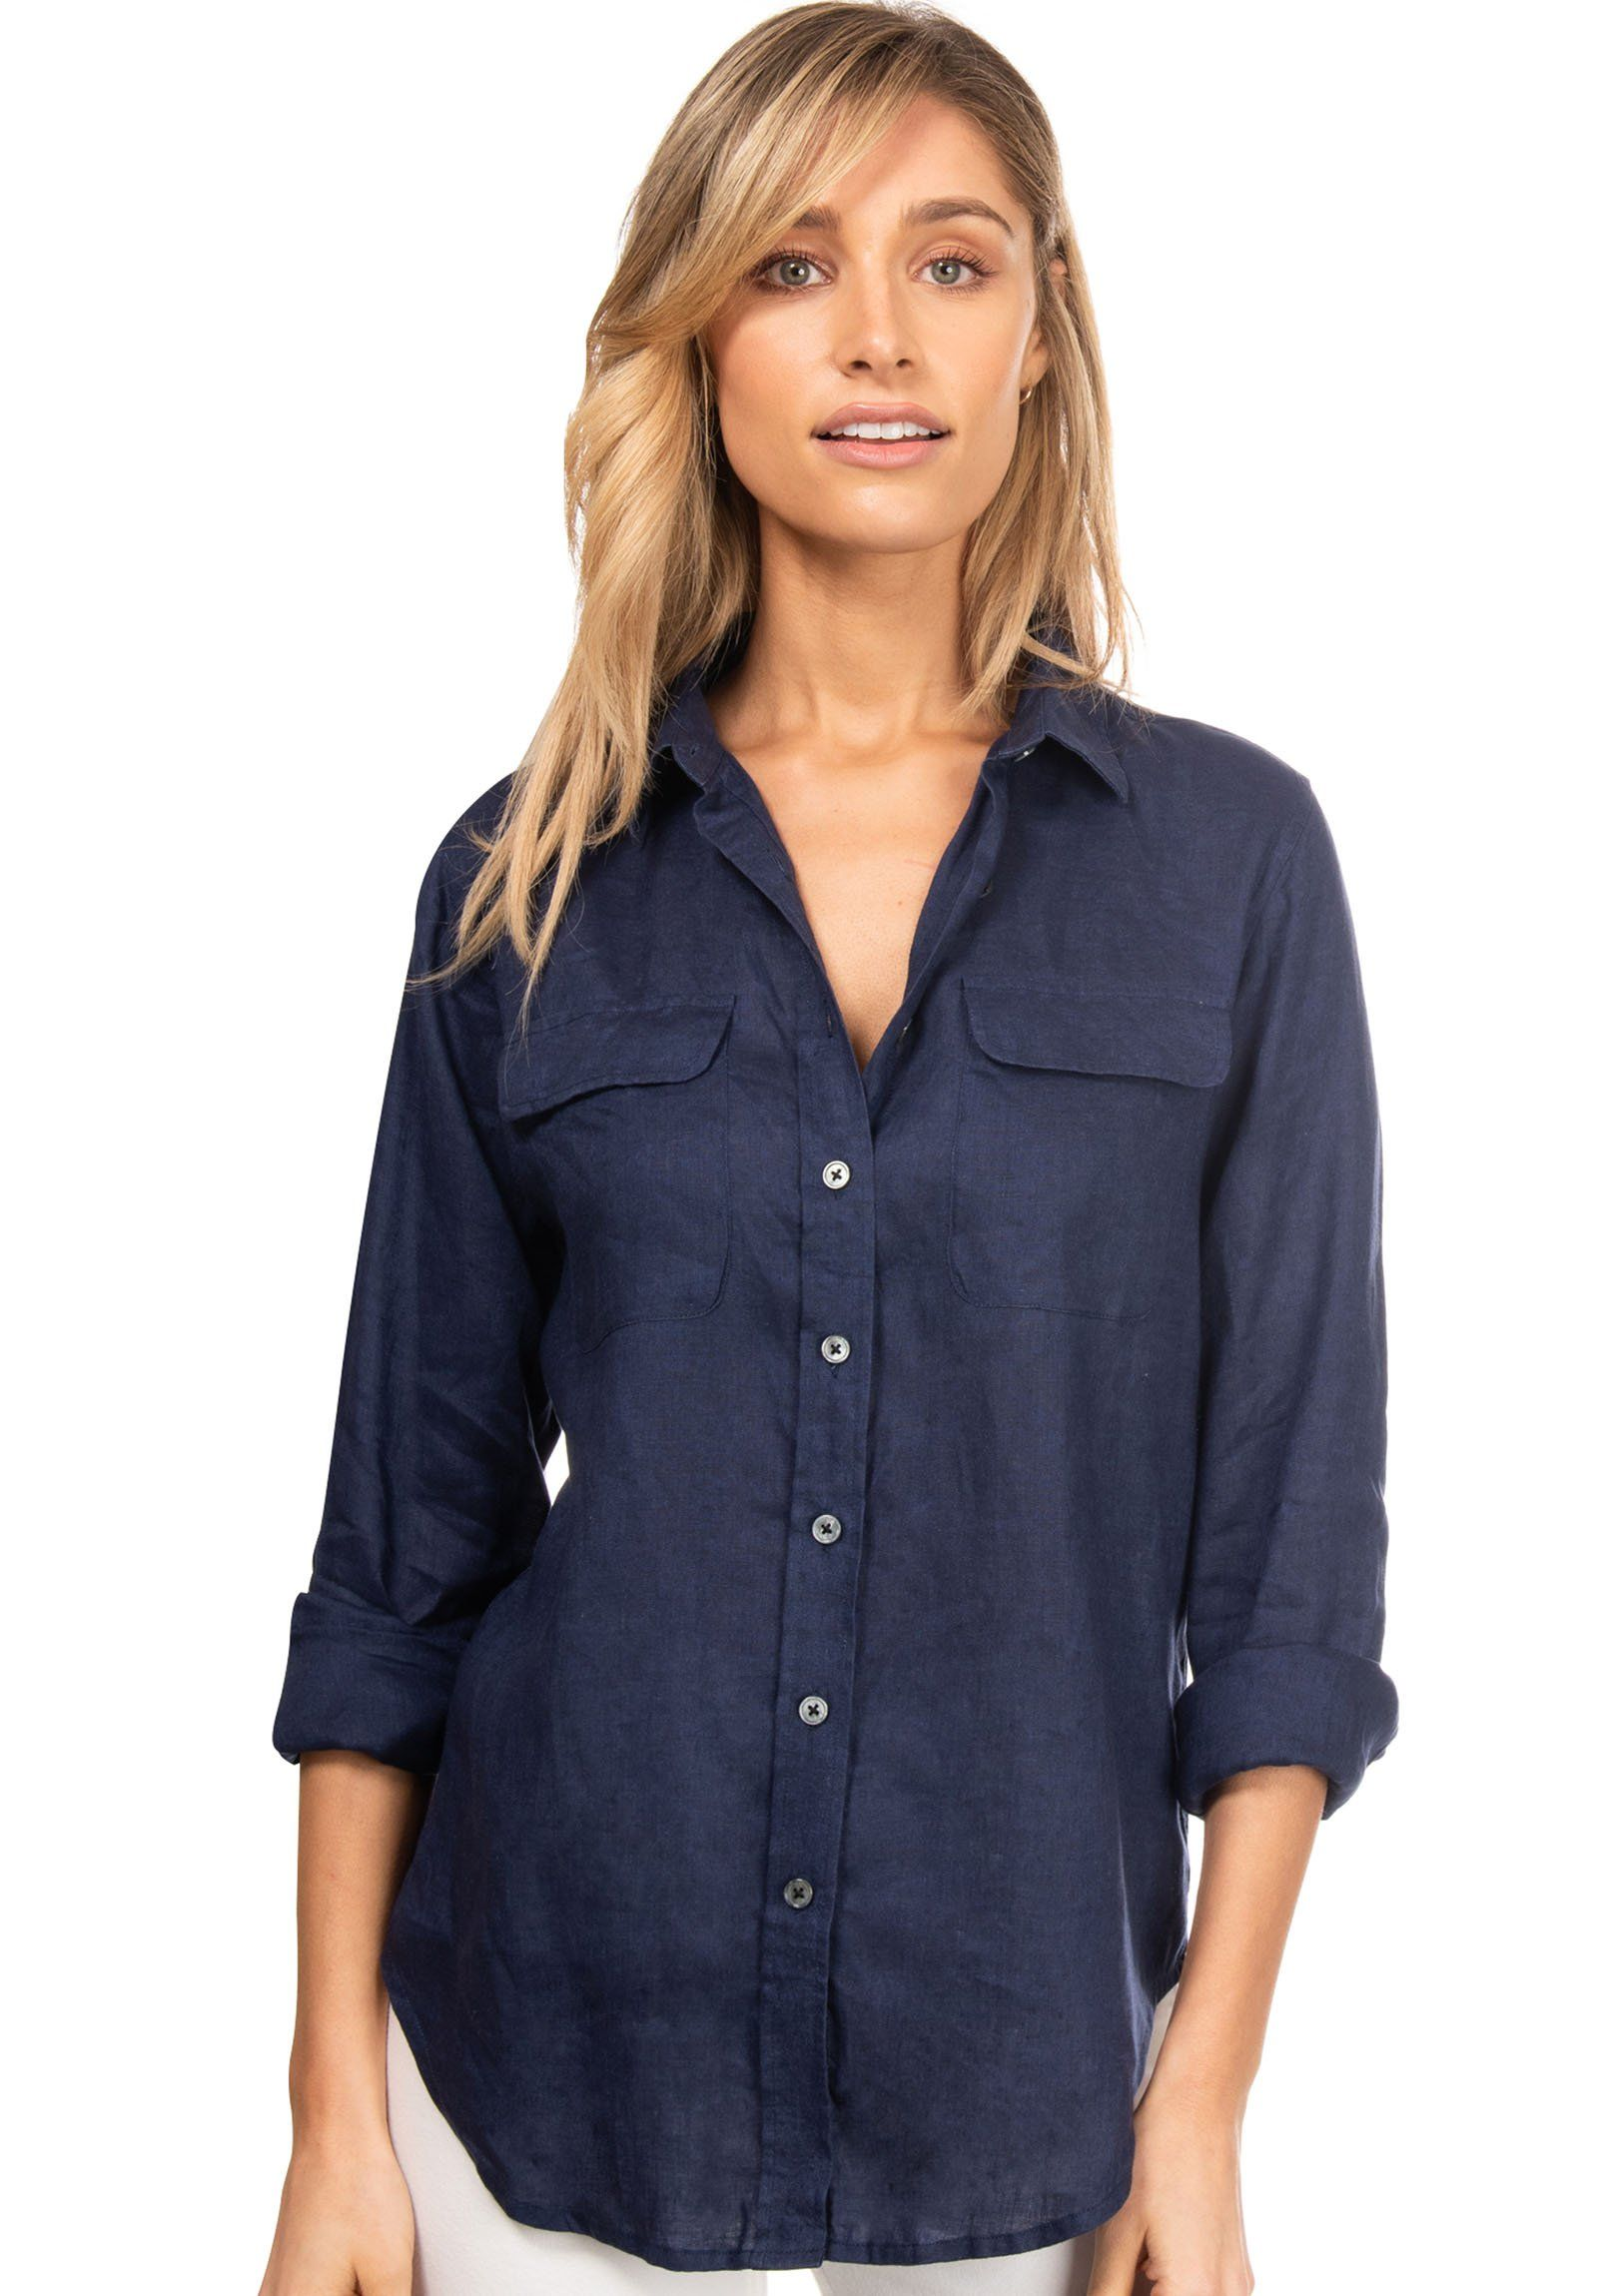 Lete Navy Blue, Relaxed Linen Shirt with Pockets